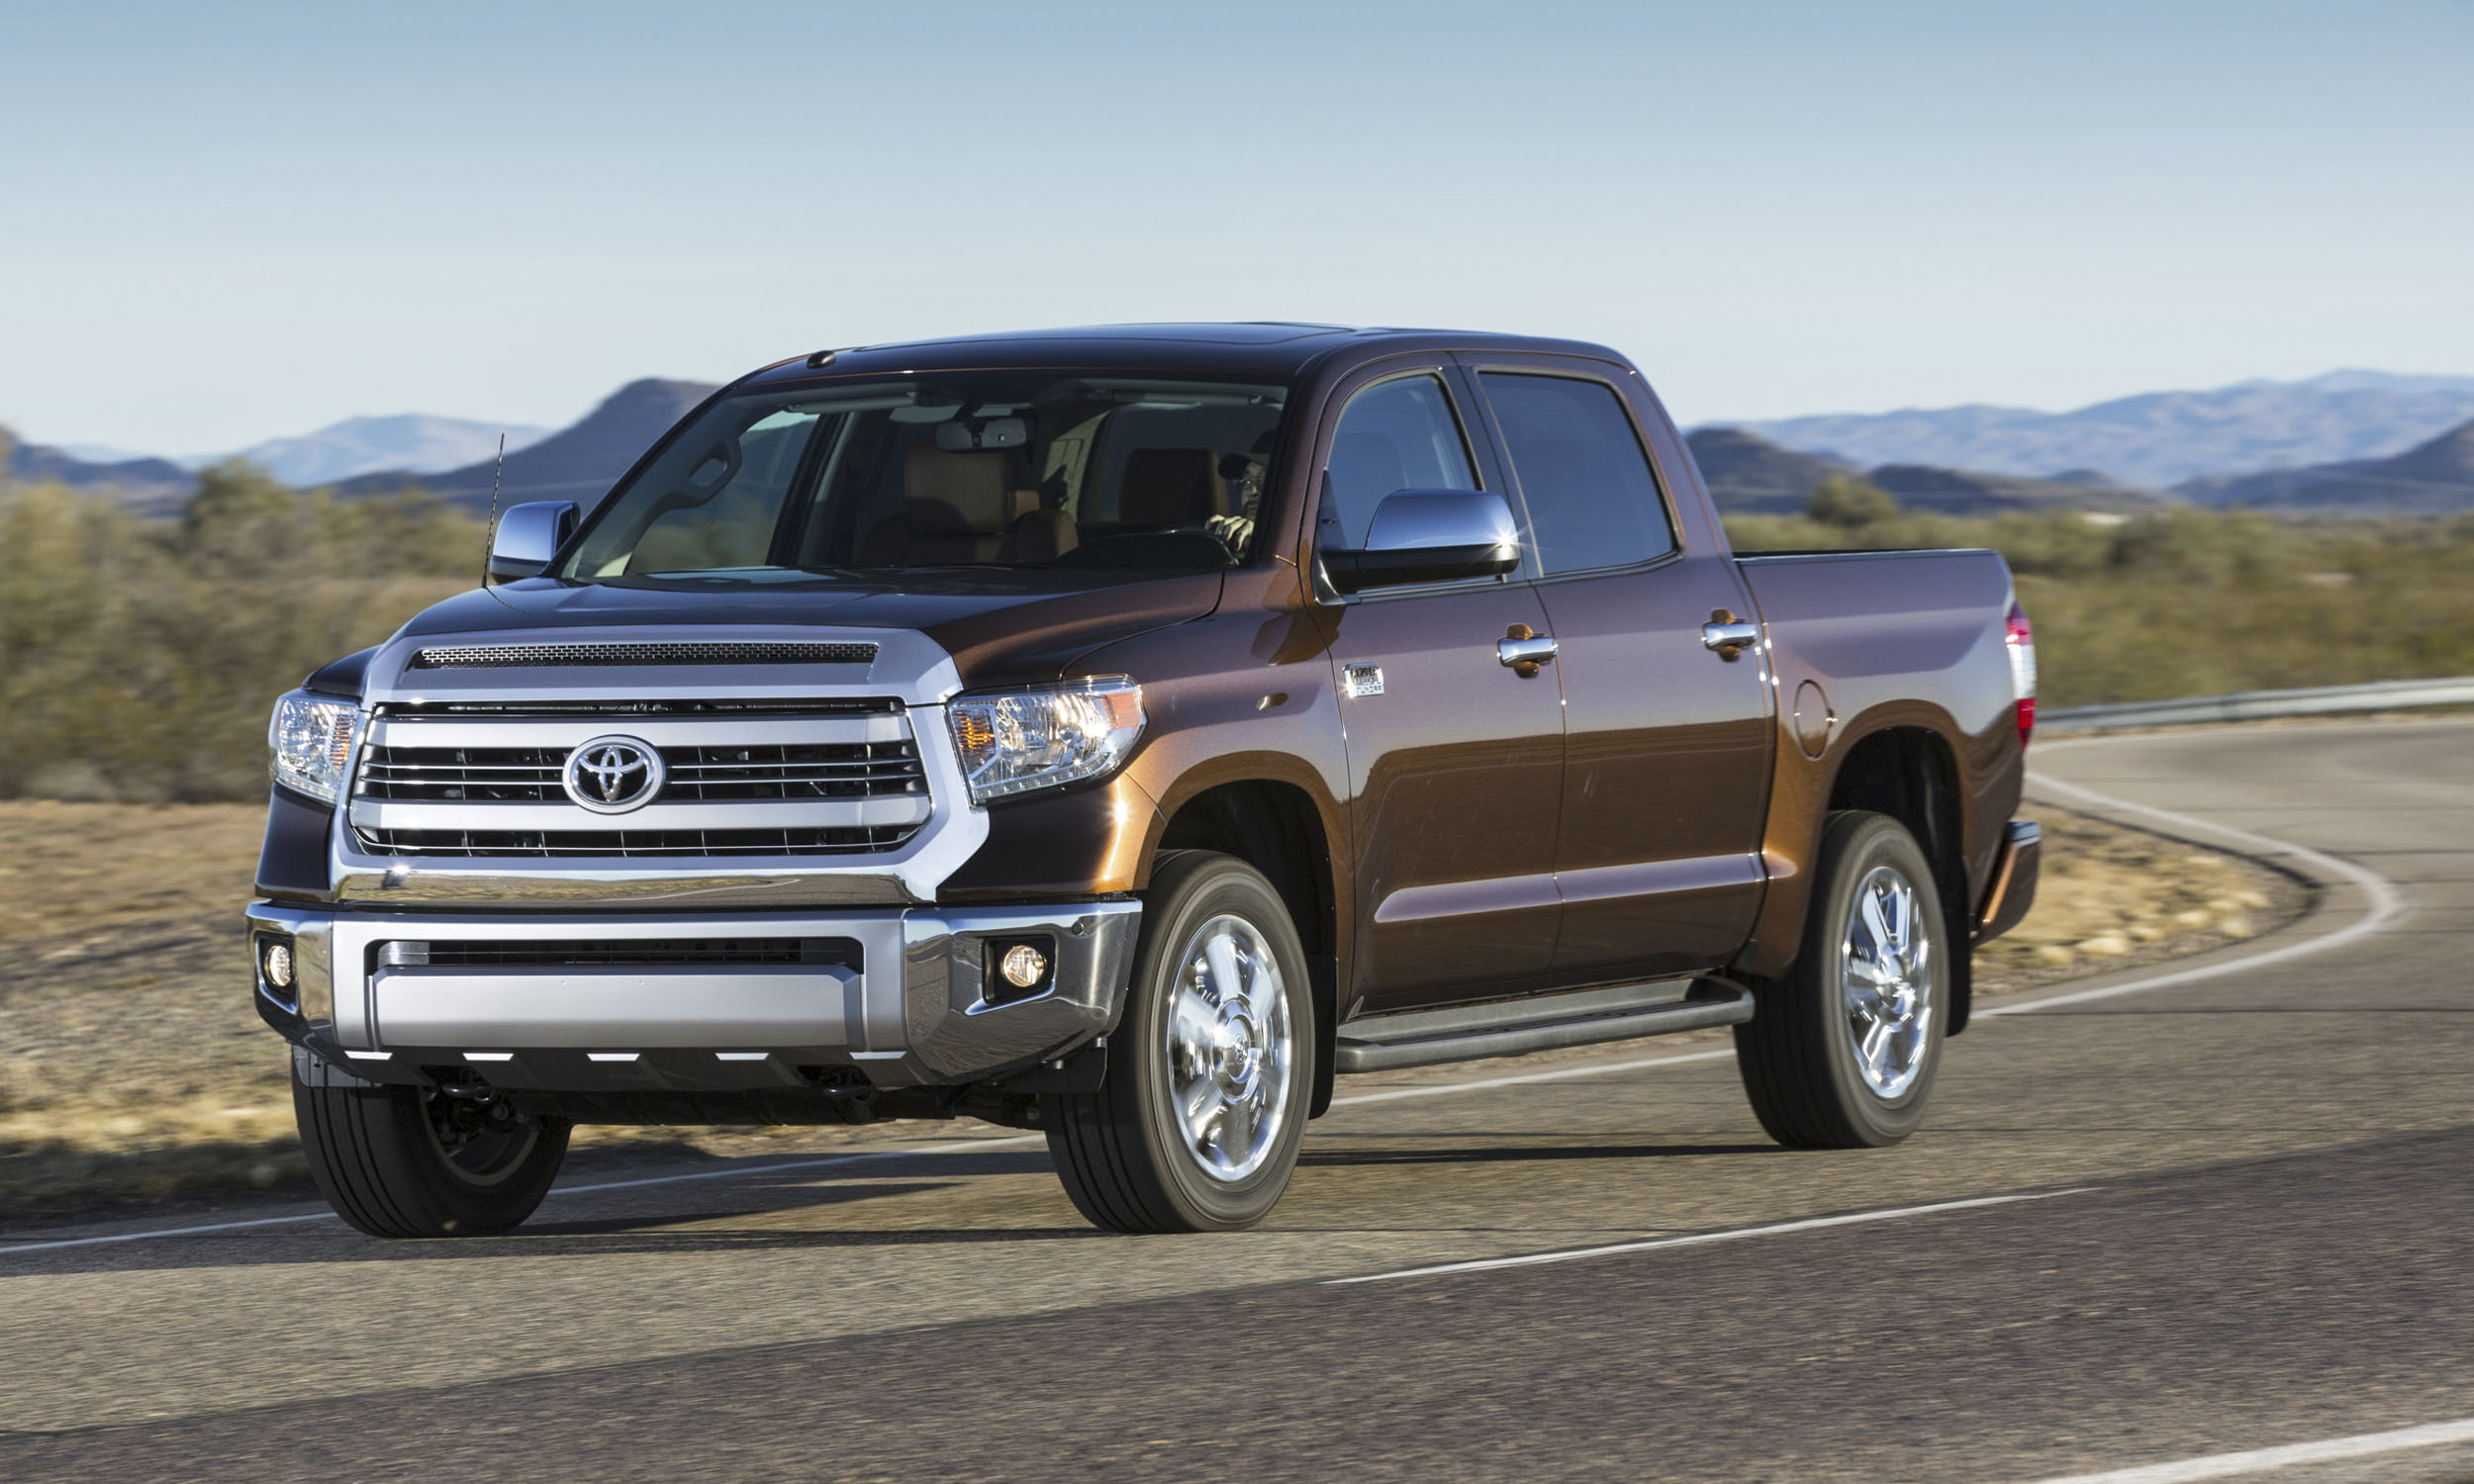 Toyota Tacoma 2015-2018 Service Manual: Open in One Side of Bus 2 Branch Line